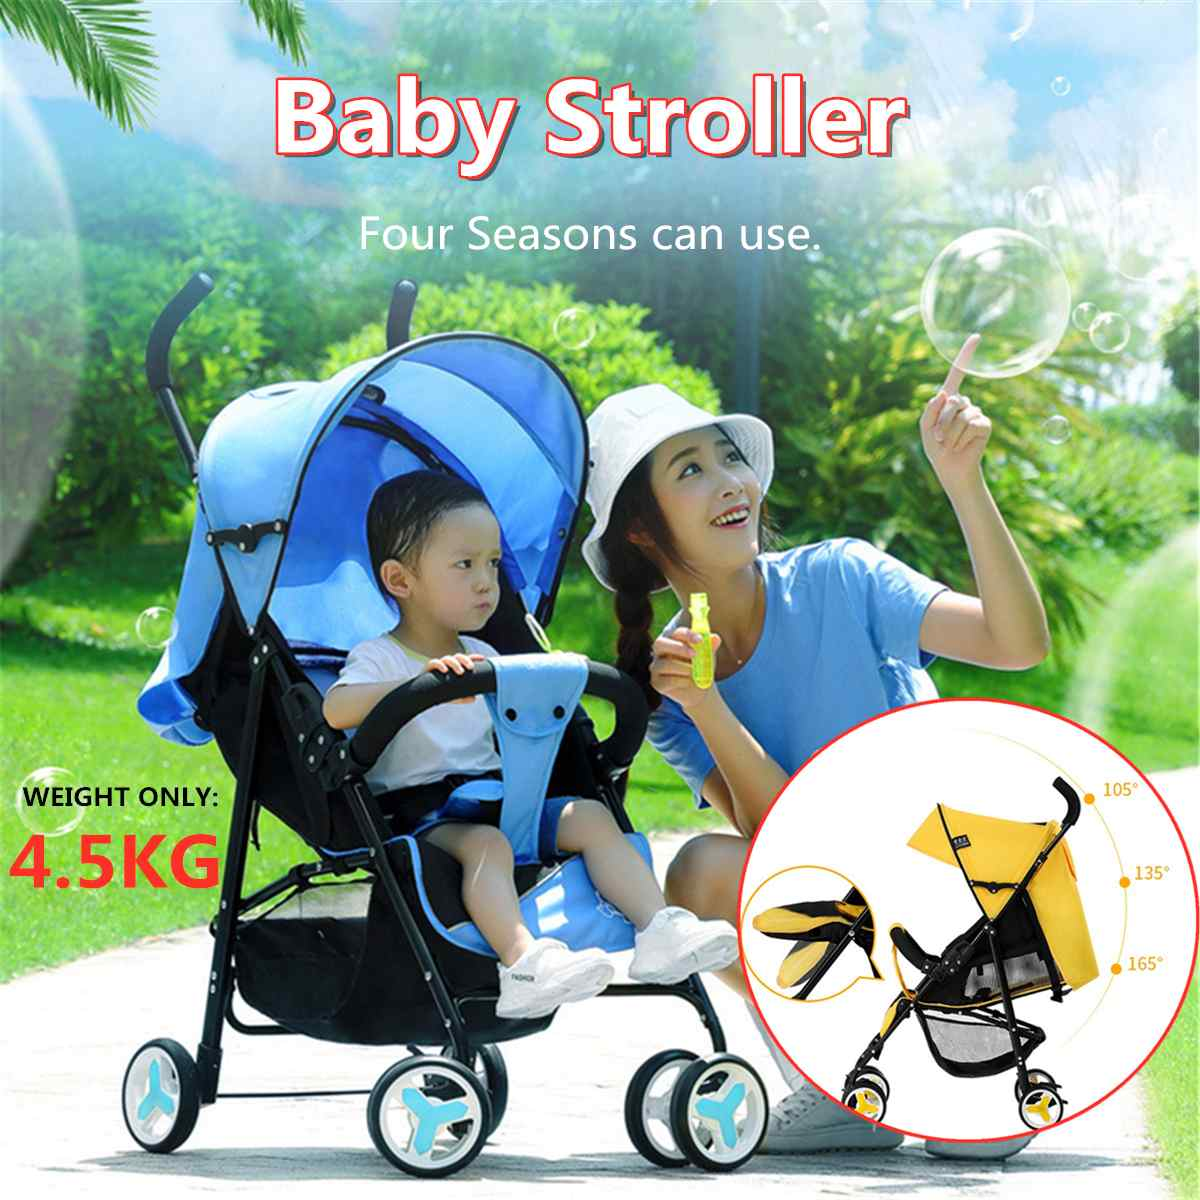 Foldable Lightweight Baby Stroller Four Wheels Kids Baby Strollers for 0-36 Mouths Toddler Carry 4.5kg Steel Pipe WheelsFoldable Lightweight Baby Stroller Four Wheels Kids Baby Strollers for 0-36 Mouths Toddler Carry 4.5kg Steel Pipe Wheels